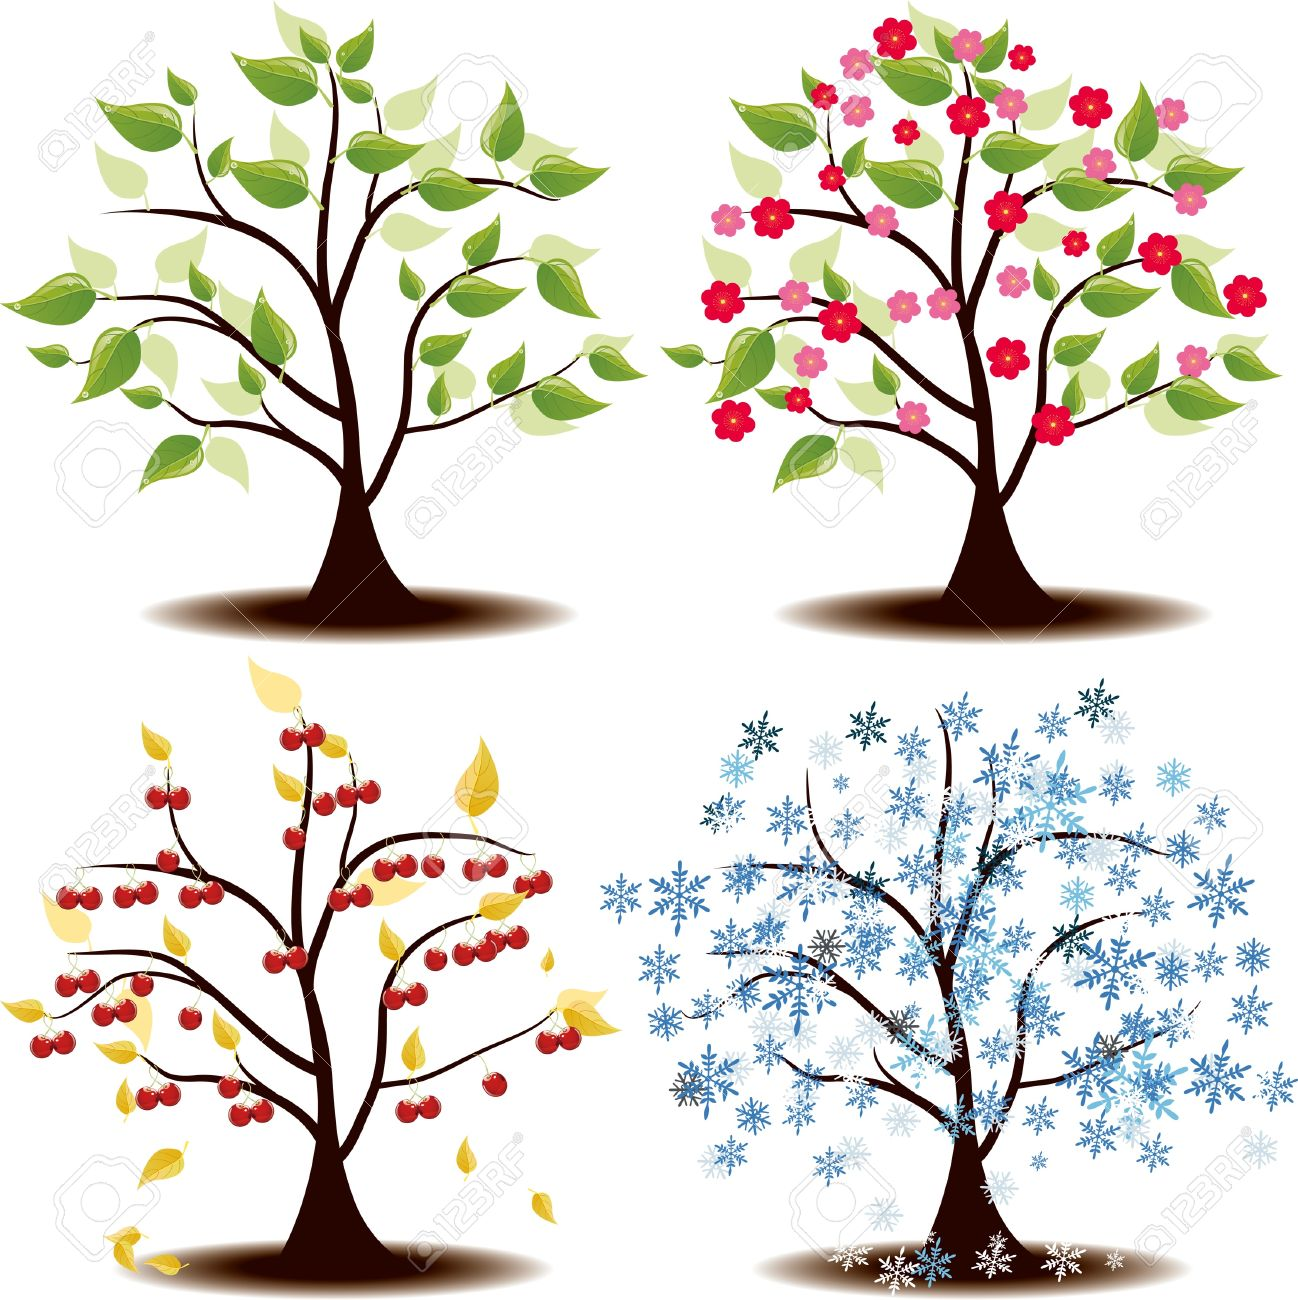 four seasons state u0027s cherry tree royalty free cliparts vectors